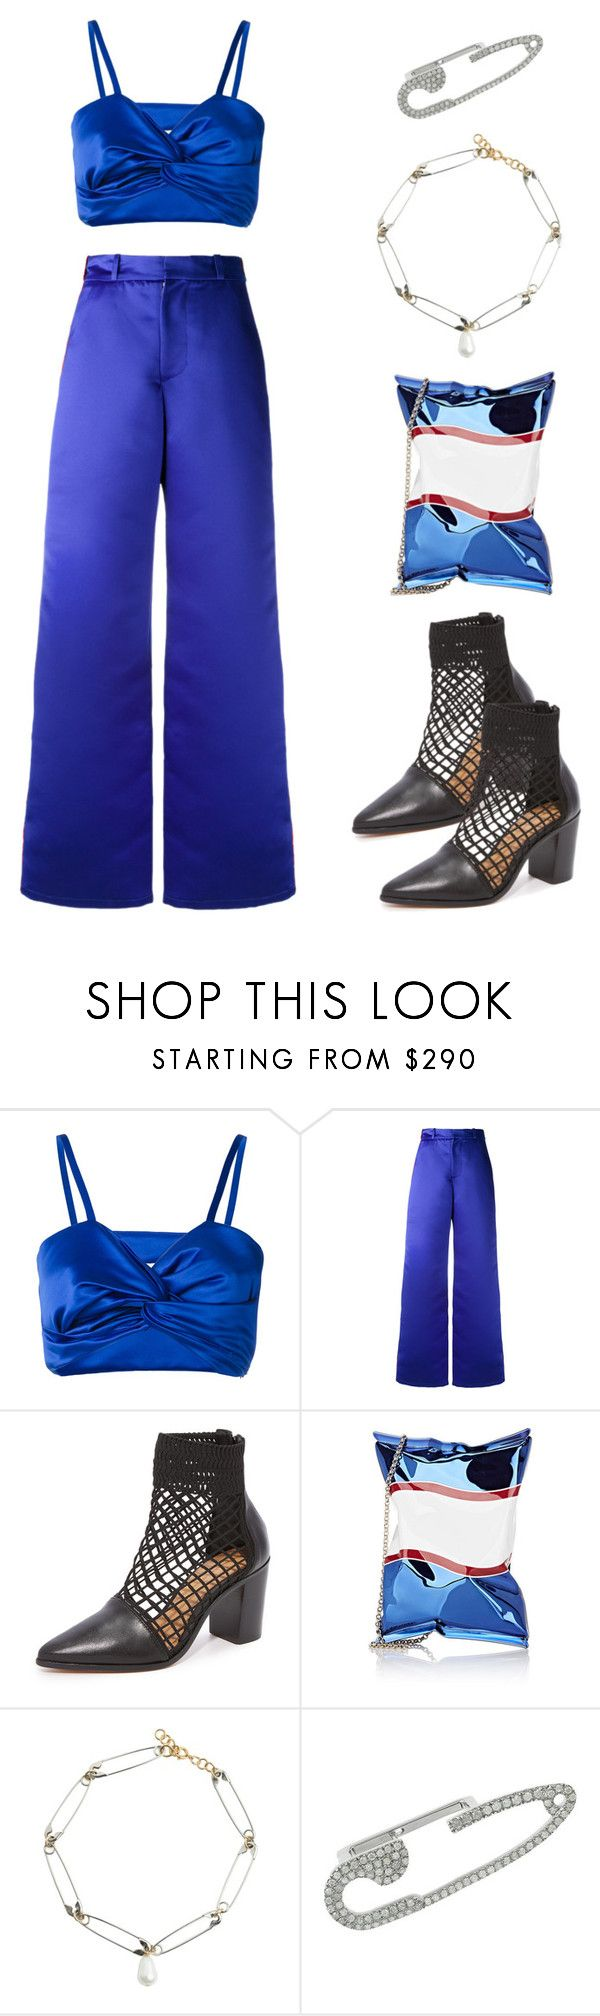 """""""Punky"""" by sewsavy ❤ liked on Polyvore featuring Sadie Williams, Schutz, Anya Hindmarch and Runa"""